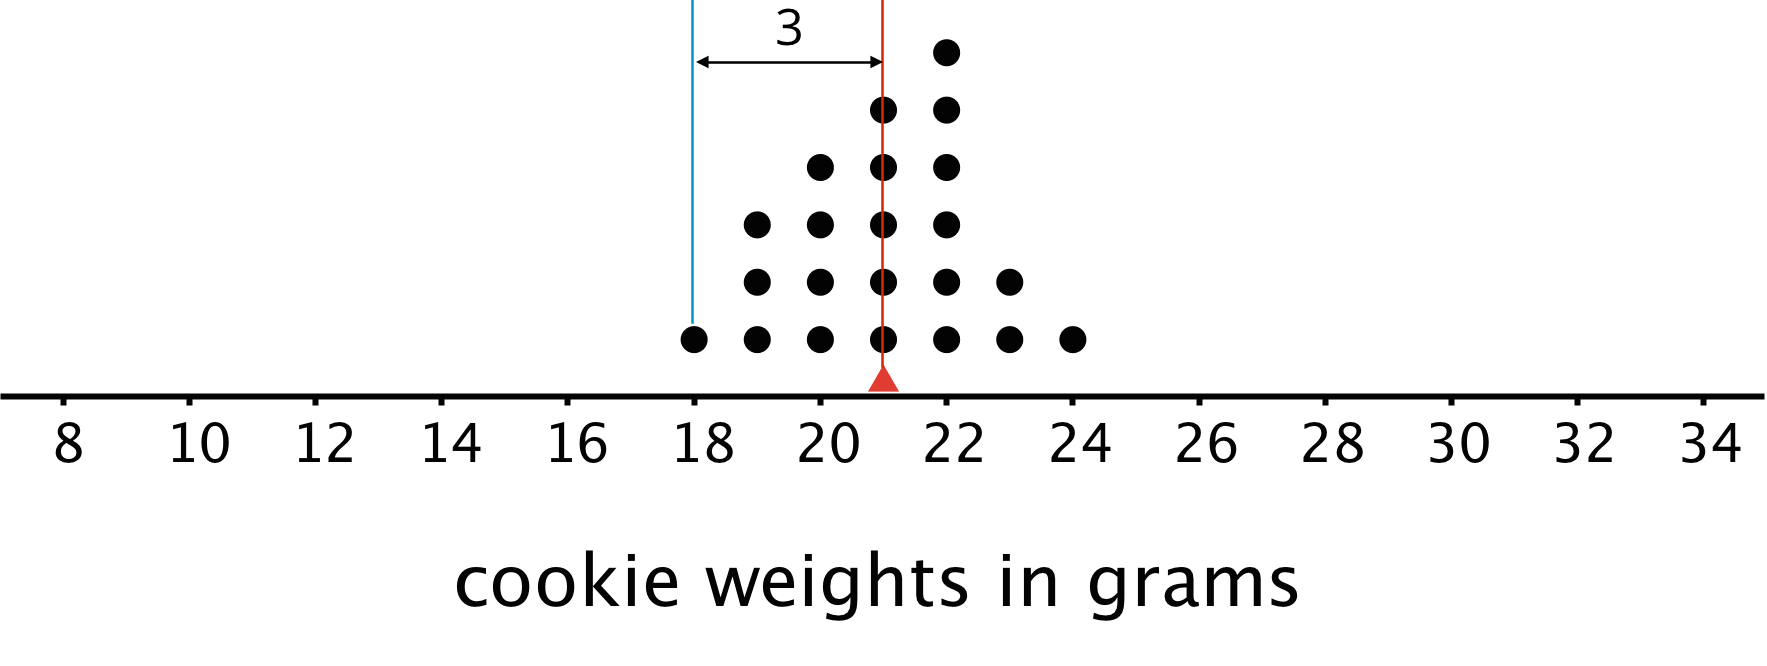 "A dot plot for ""cookie weights in grams."" The numbers 8 through 34, in increments of 2, are indicated. A triangle is indicated at 21 grams. There are two perpendicular lines drawn, one at 18 grams and the other at 21 grams. A horizontal line between the two lines is labeled 3. The data are as follows: 18 grams, 1 dot; 19 grams, 3 dots; 20 grams, 4 dots; 21 grams, 5 dots; 22 grams, 6 dots; 23 grams, 2 dots, 24 grams, 1 dot."